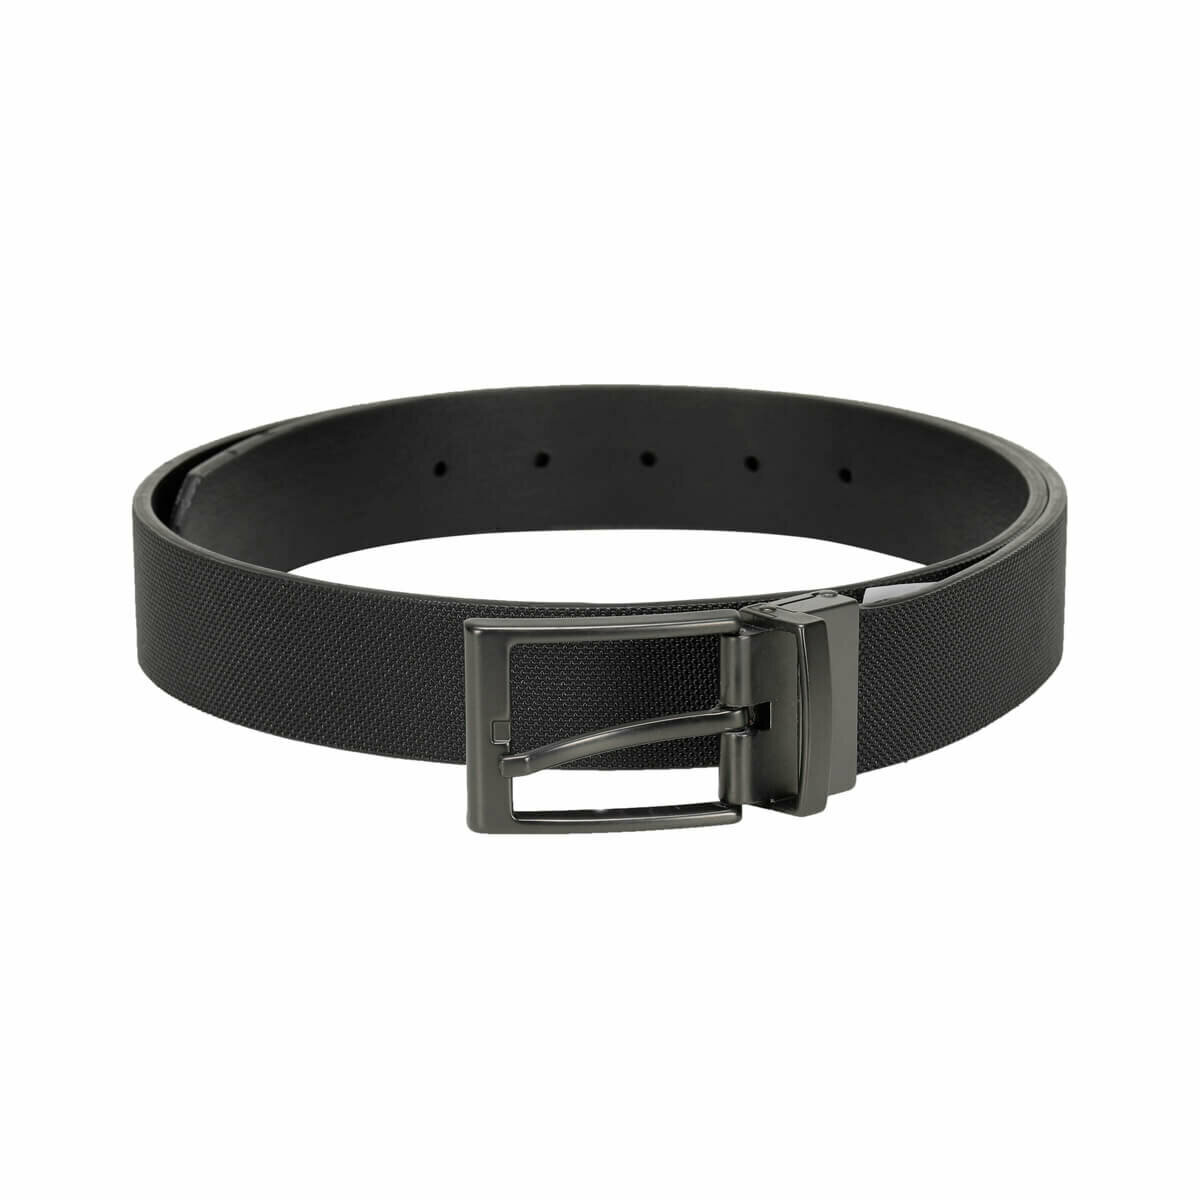 FLO MPRA3550 Black Male Belt Garamond